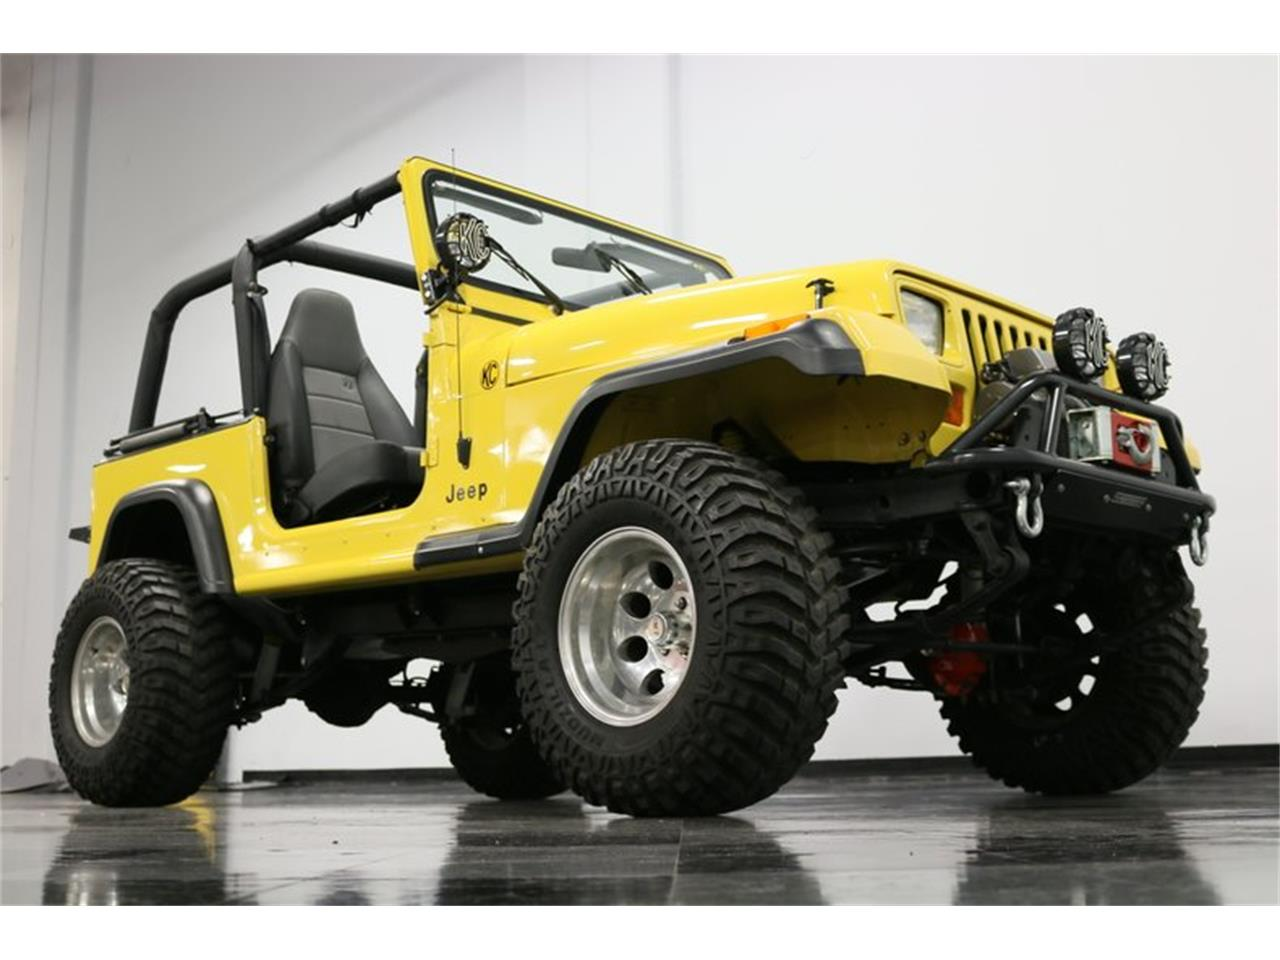 Large Picture of '93 Jeep Wrangler located in Texas Offered by Streetside Classics - Dallas / Fort Worth - P701